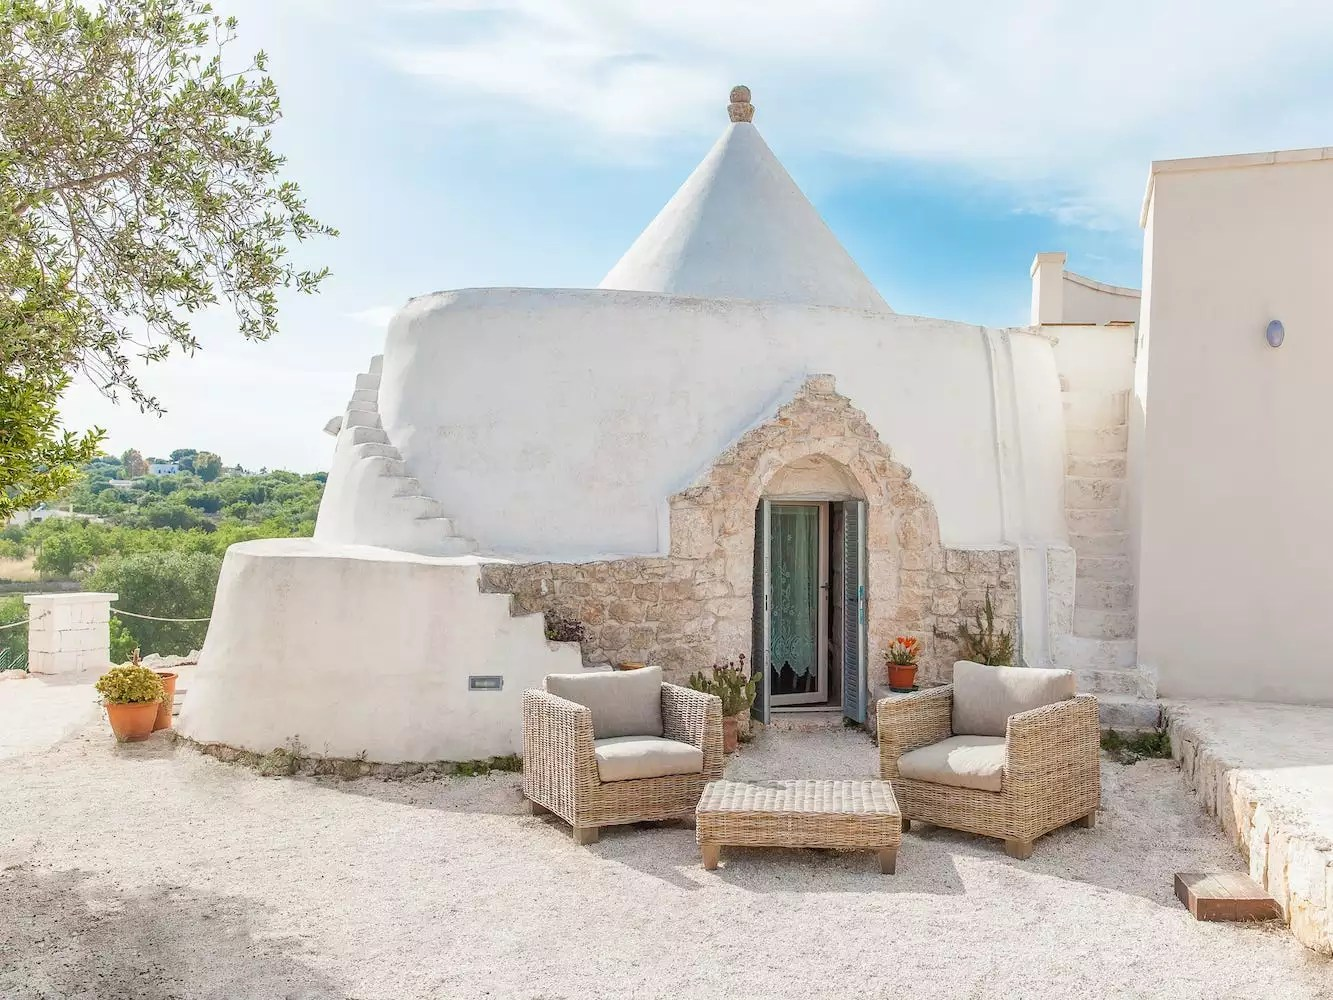 You can sleep in a cone-shaped tiny home in Italy for $60 a night, and it comes with an infinity pool